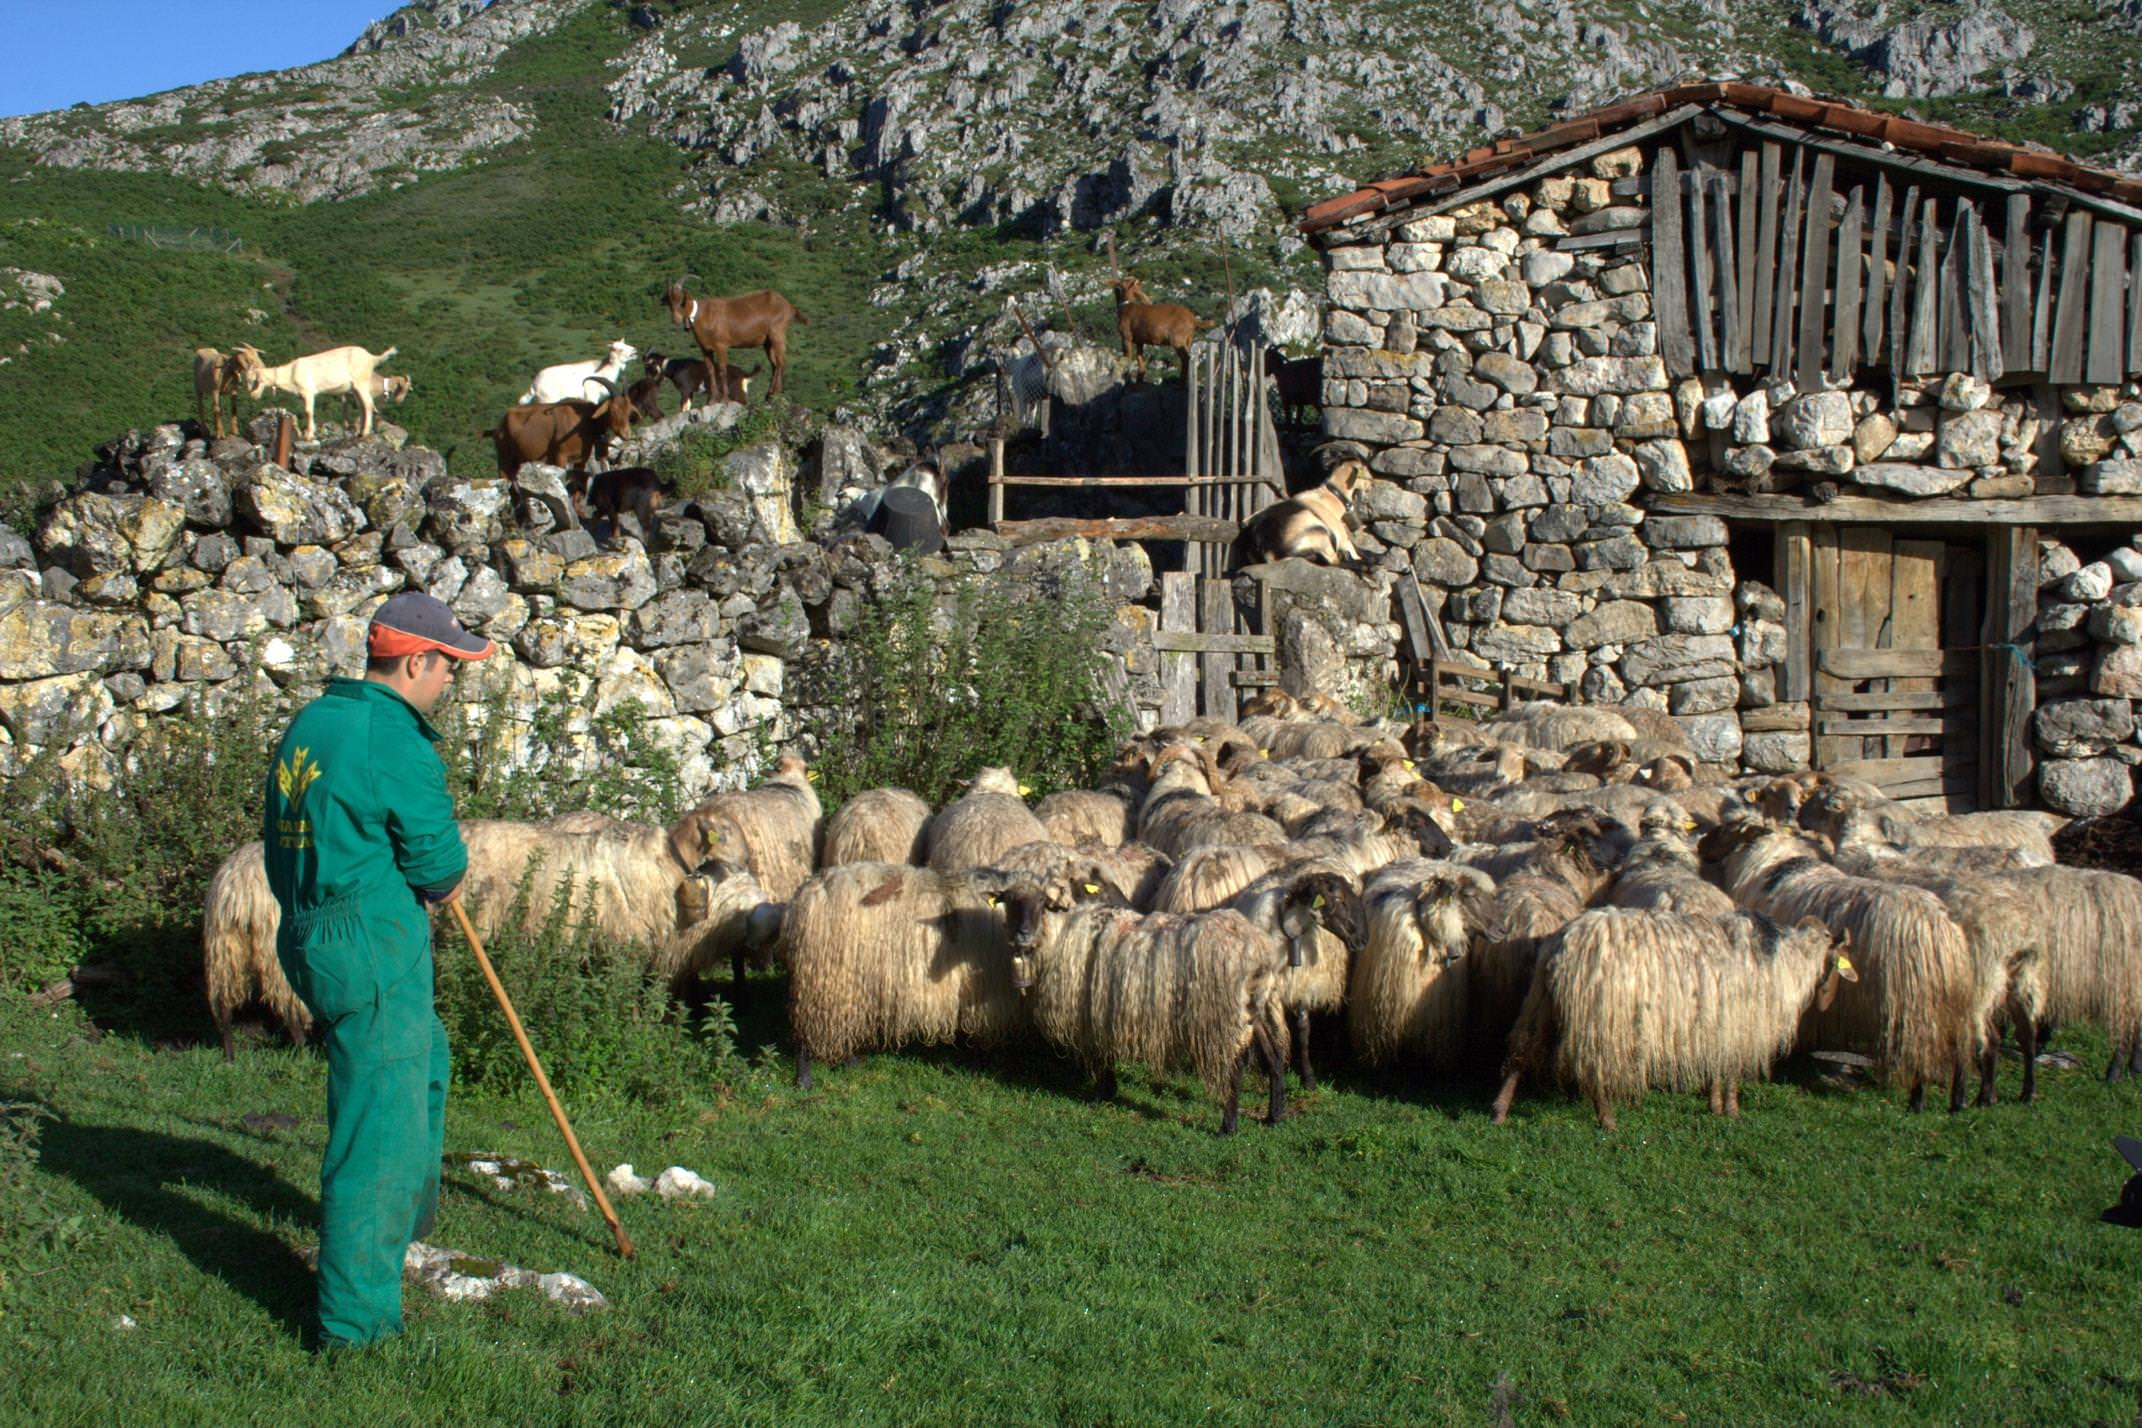 Spain picos de europa shepherd high pastures gamoneu cheese